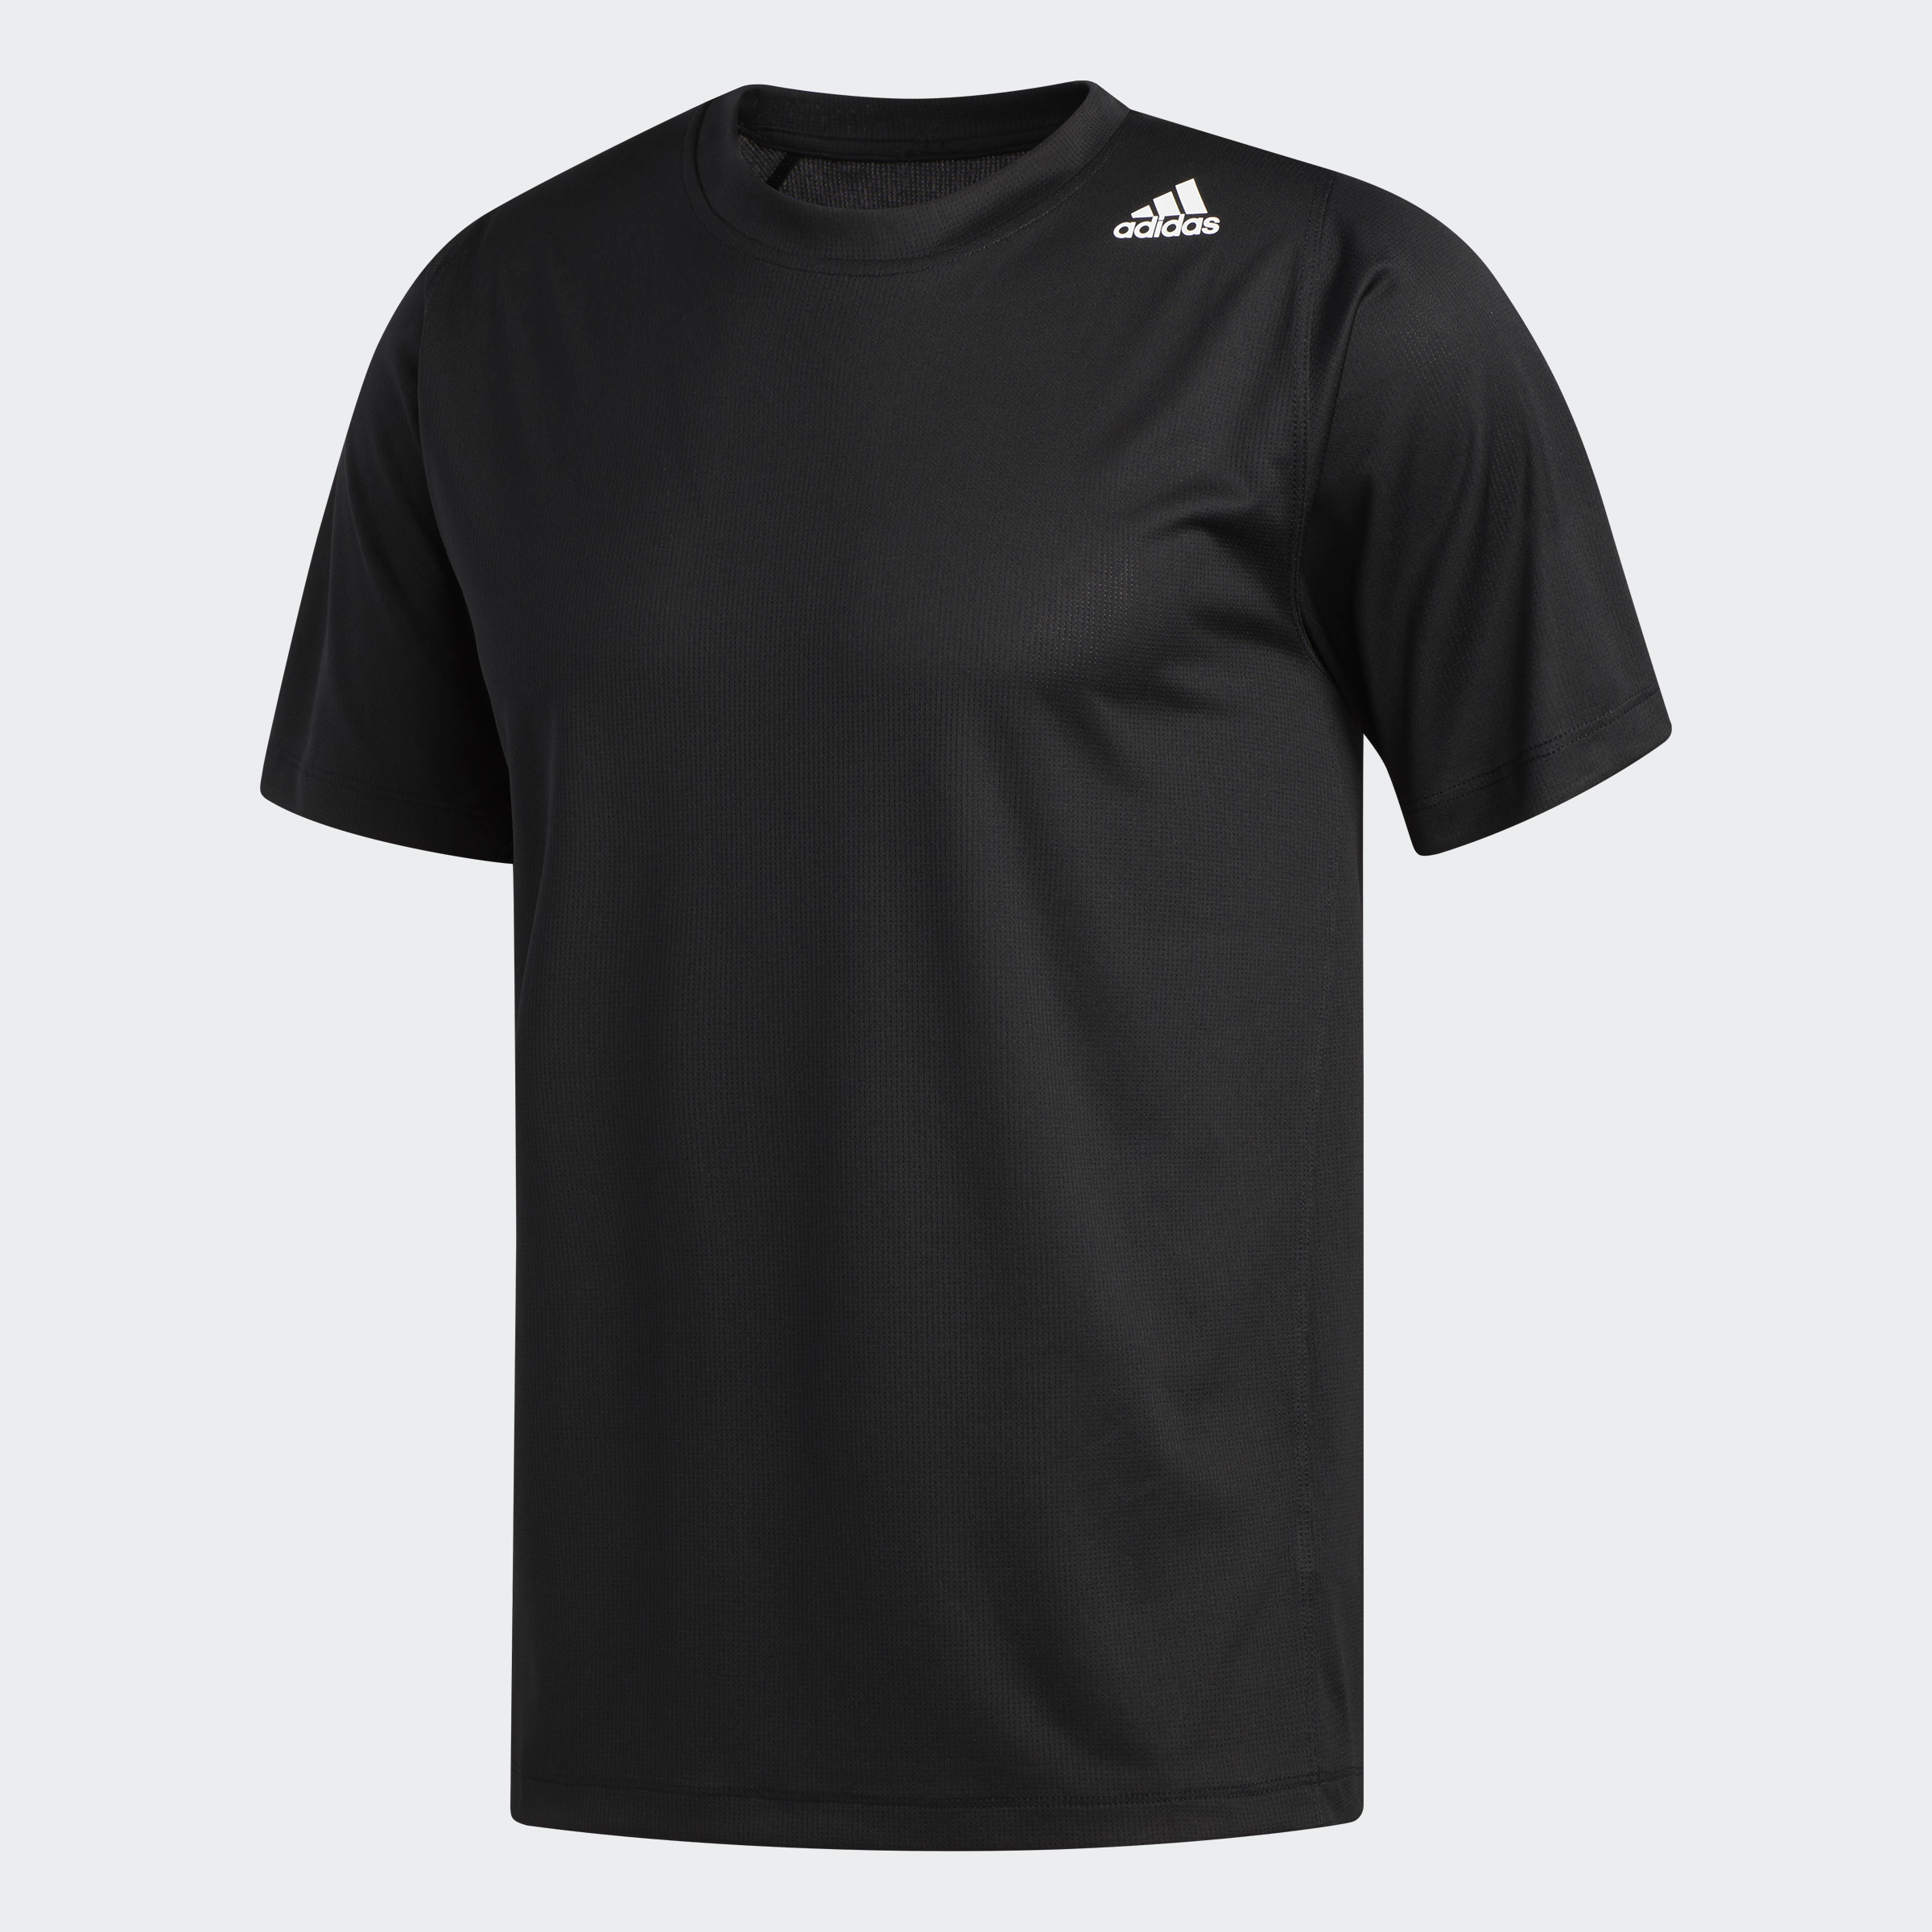 adidas-FreeLift-Sport-Fitted-3-Stripes-Tee-Men-039-s-Shirts miniature 22